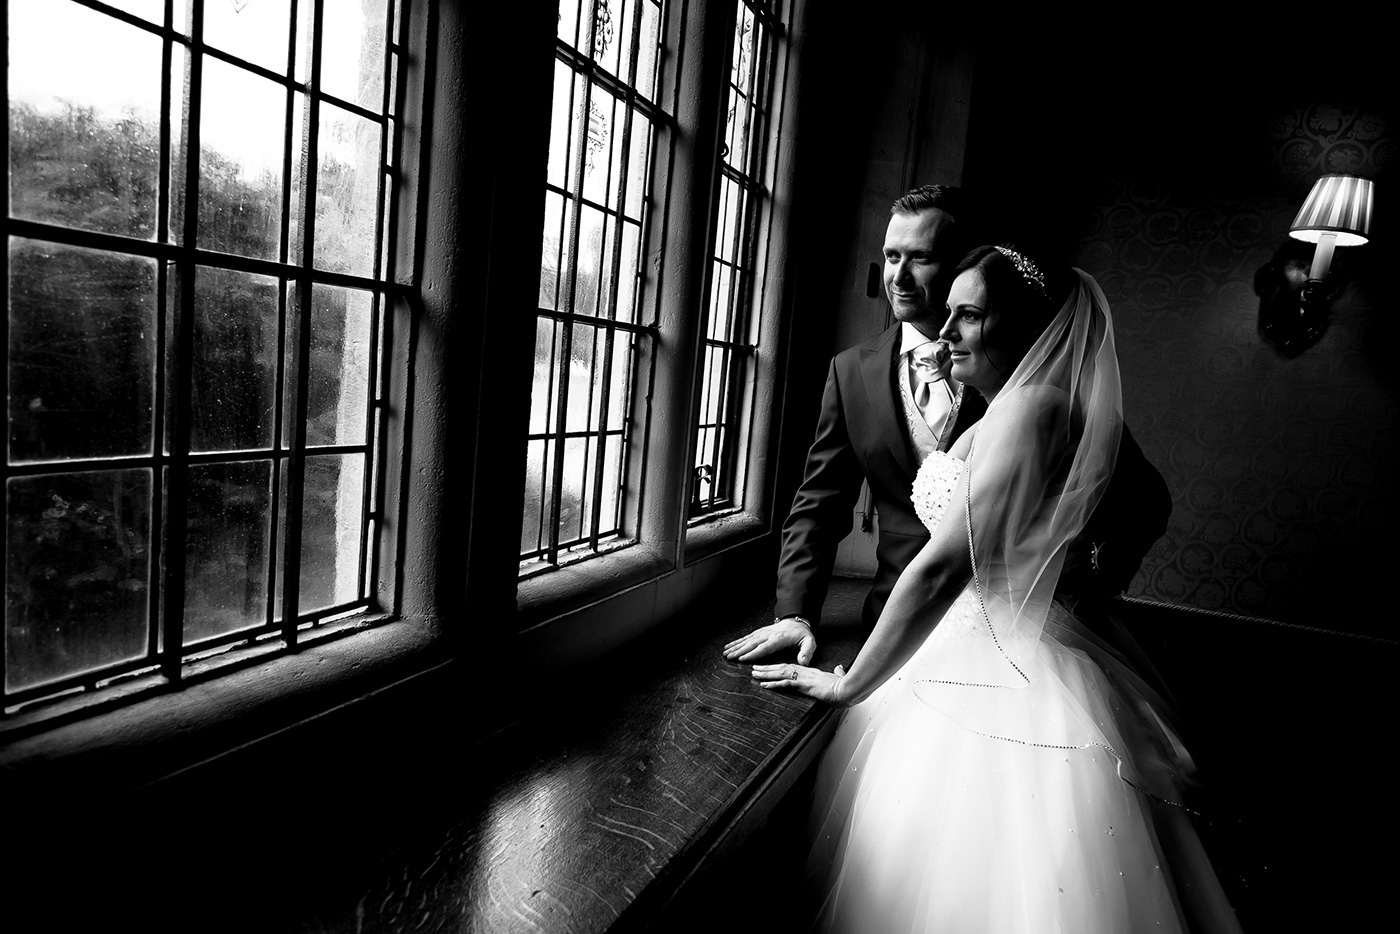 Andy and Donna pose by a window at Hanbury Manor Hotel.